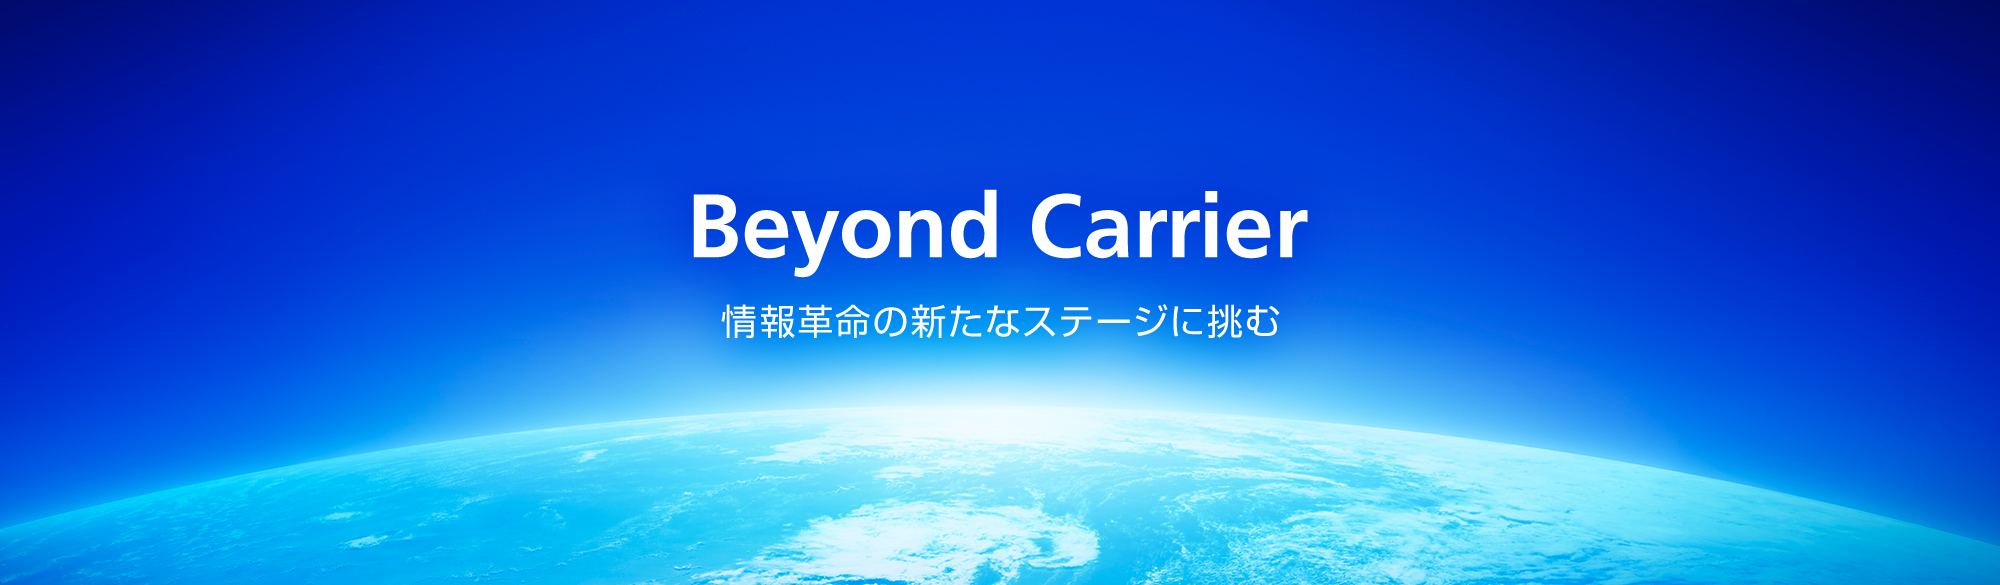 Beyond Carrier 情報革命の新たなステージに挑む